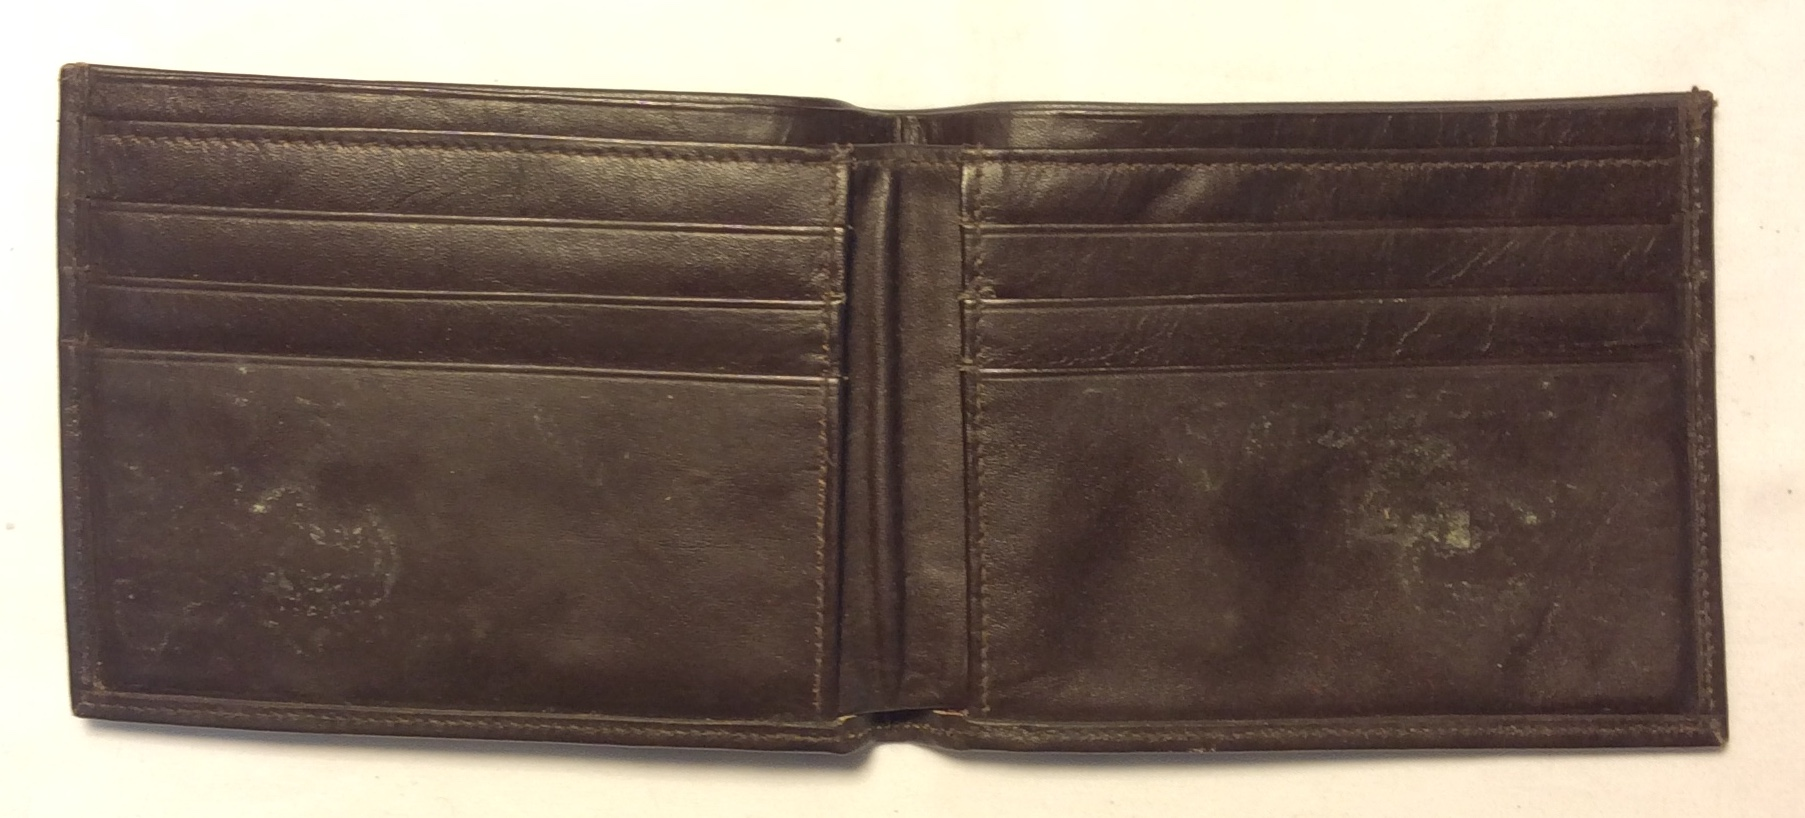 Dark brown leather with fade